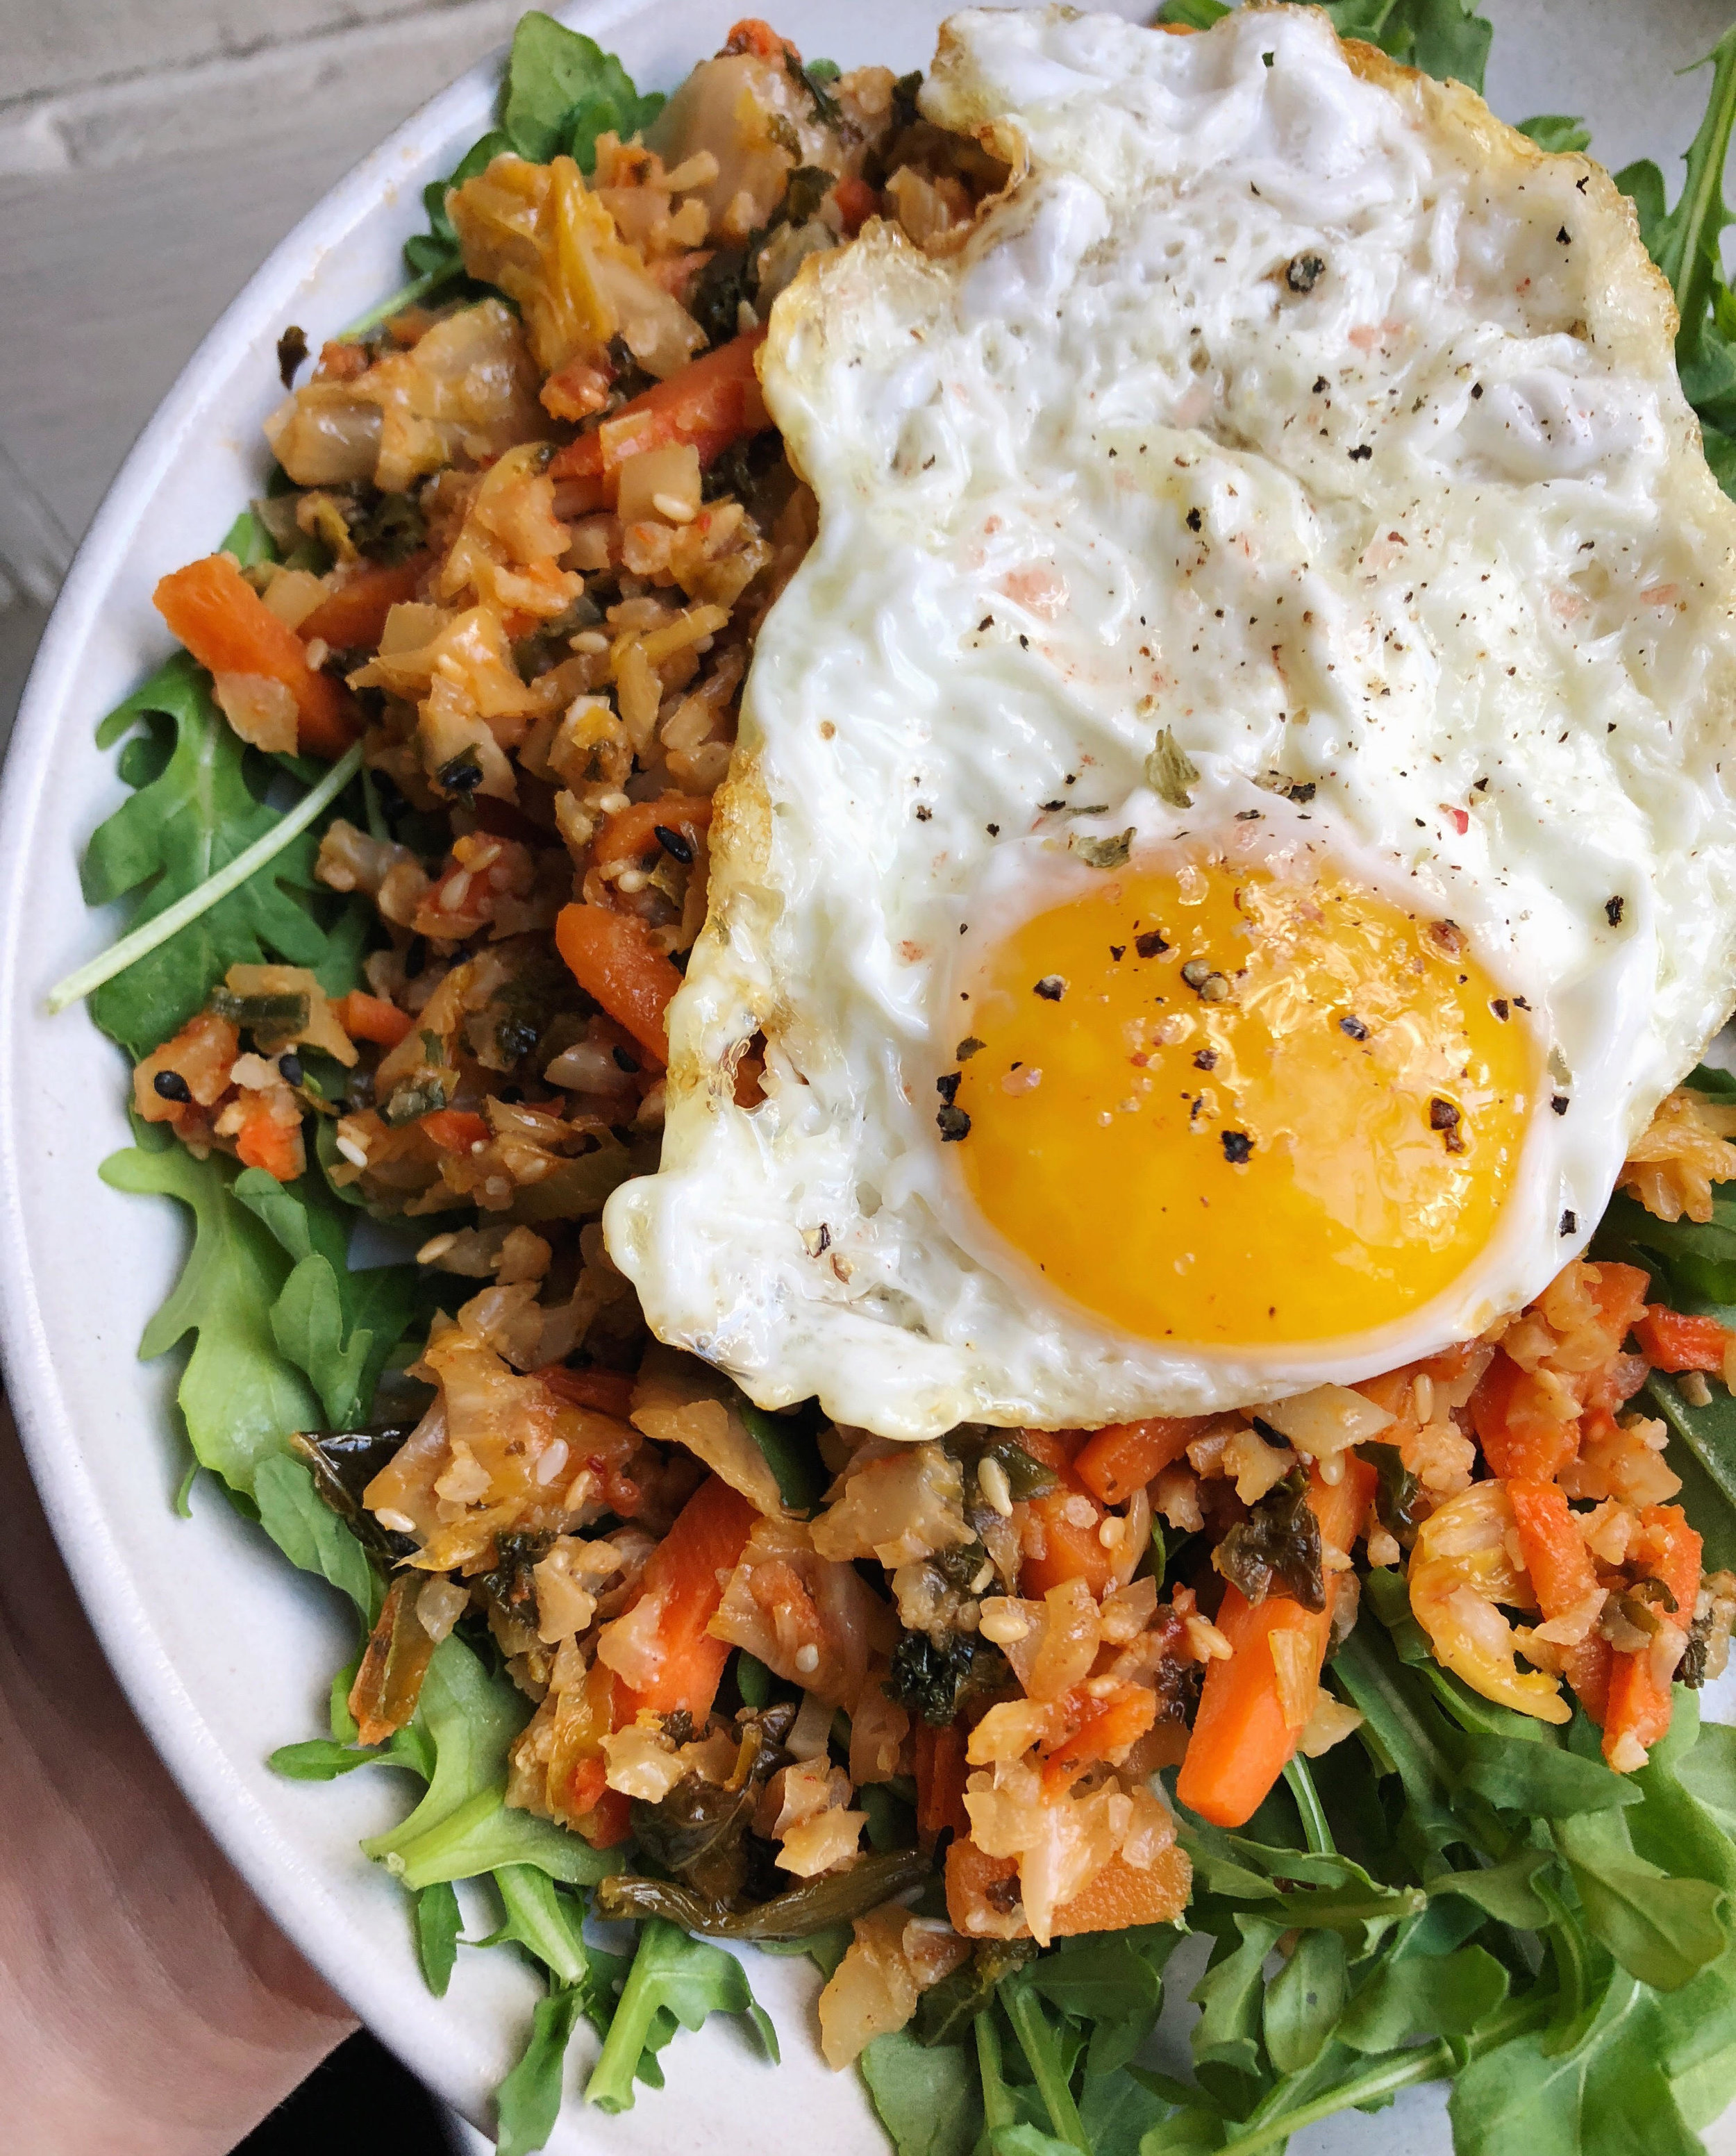 Sunny side up egg on a kimchi and rice stir fry